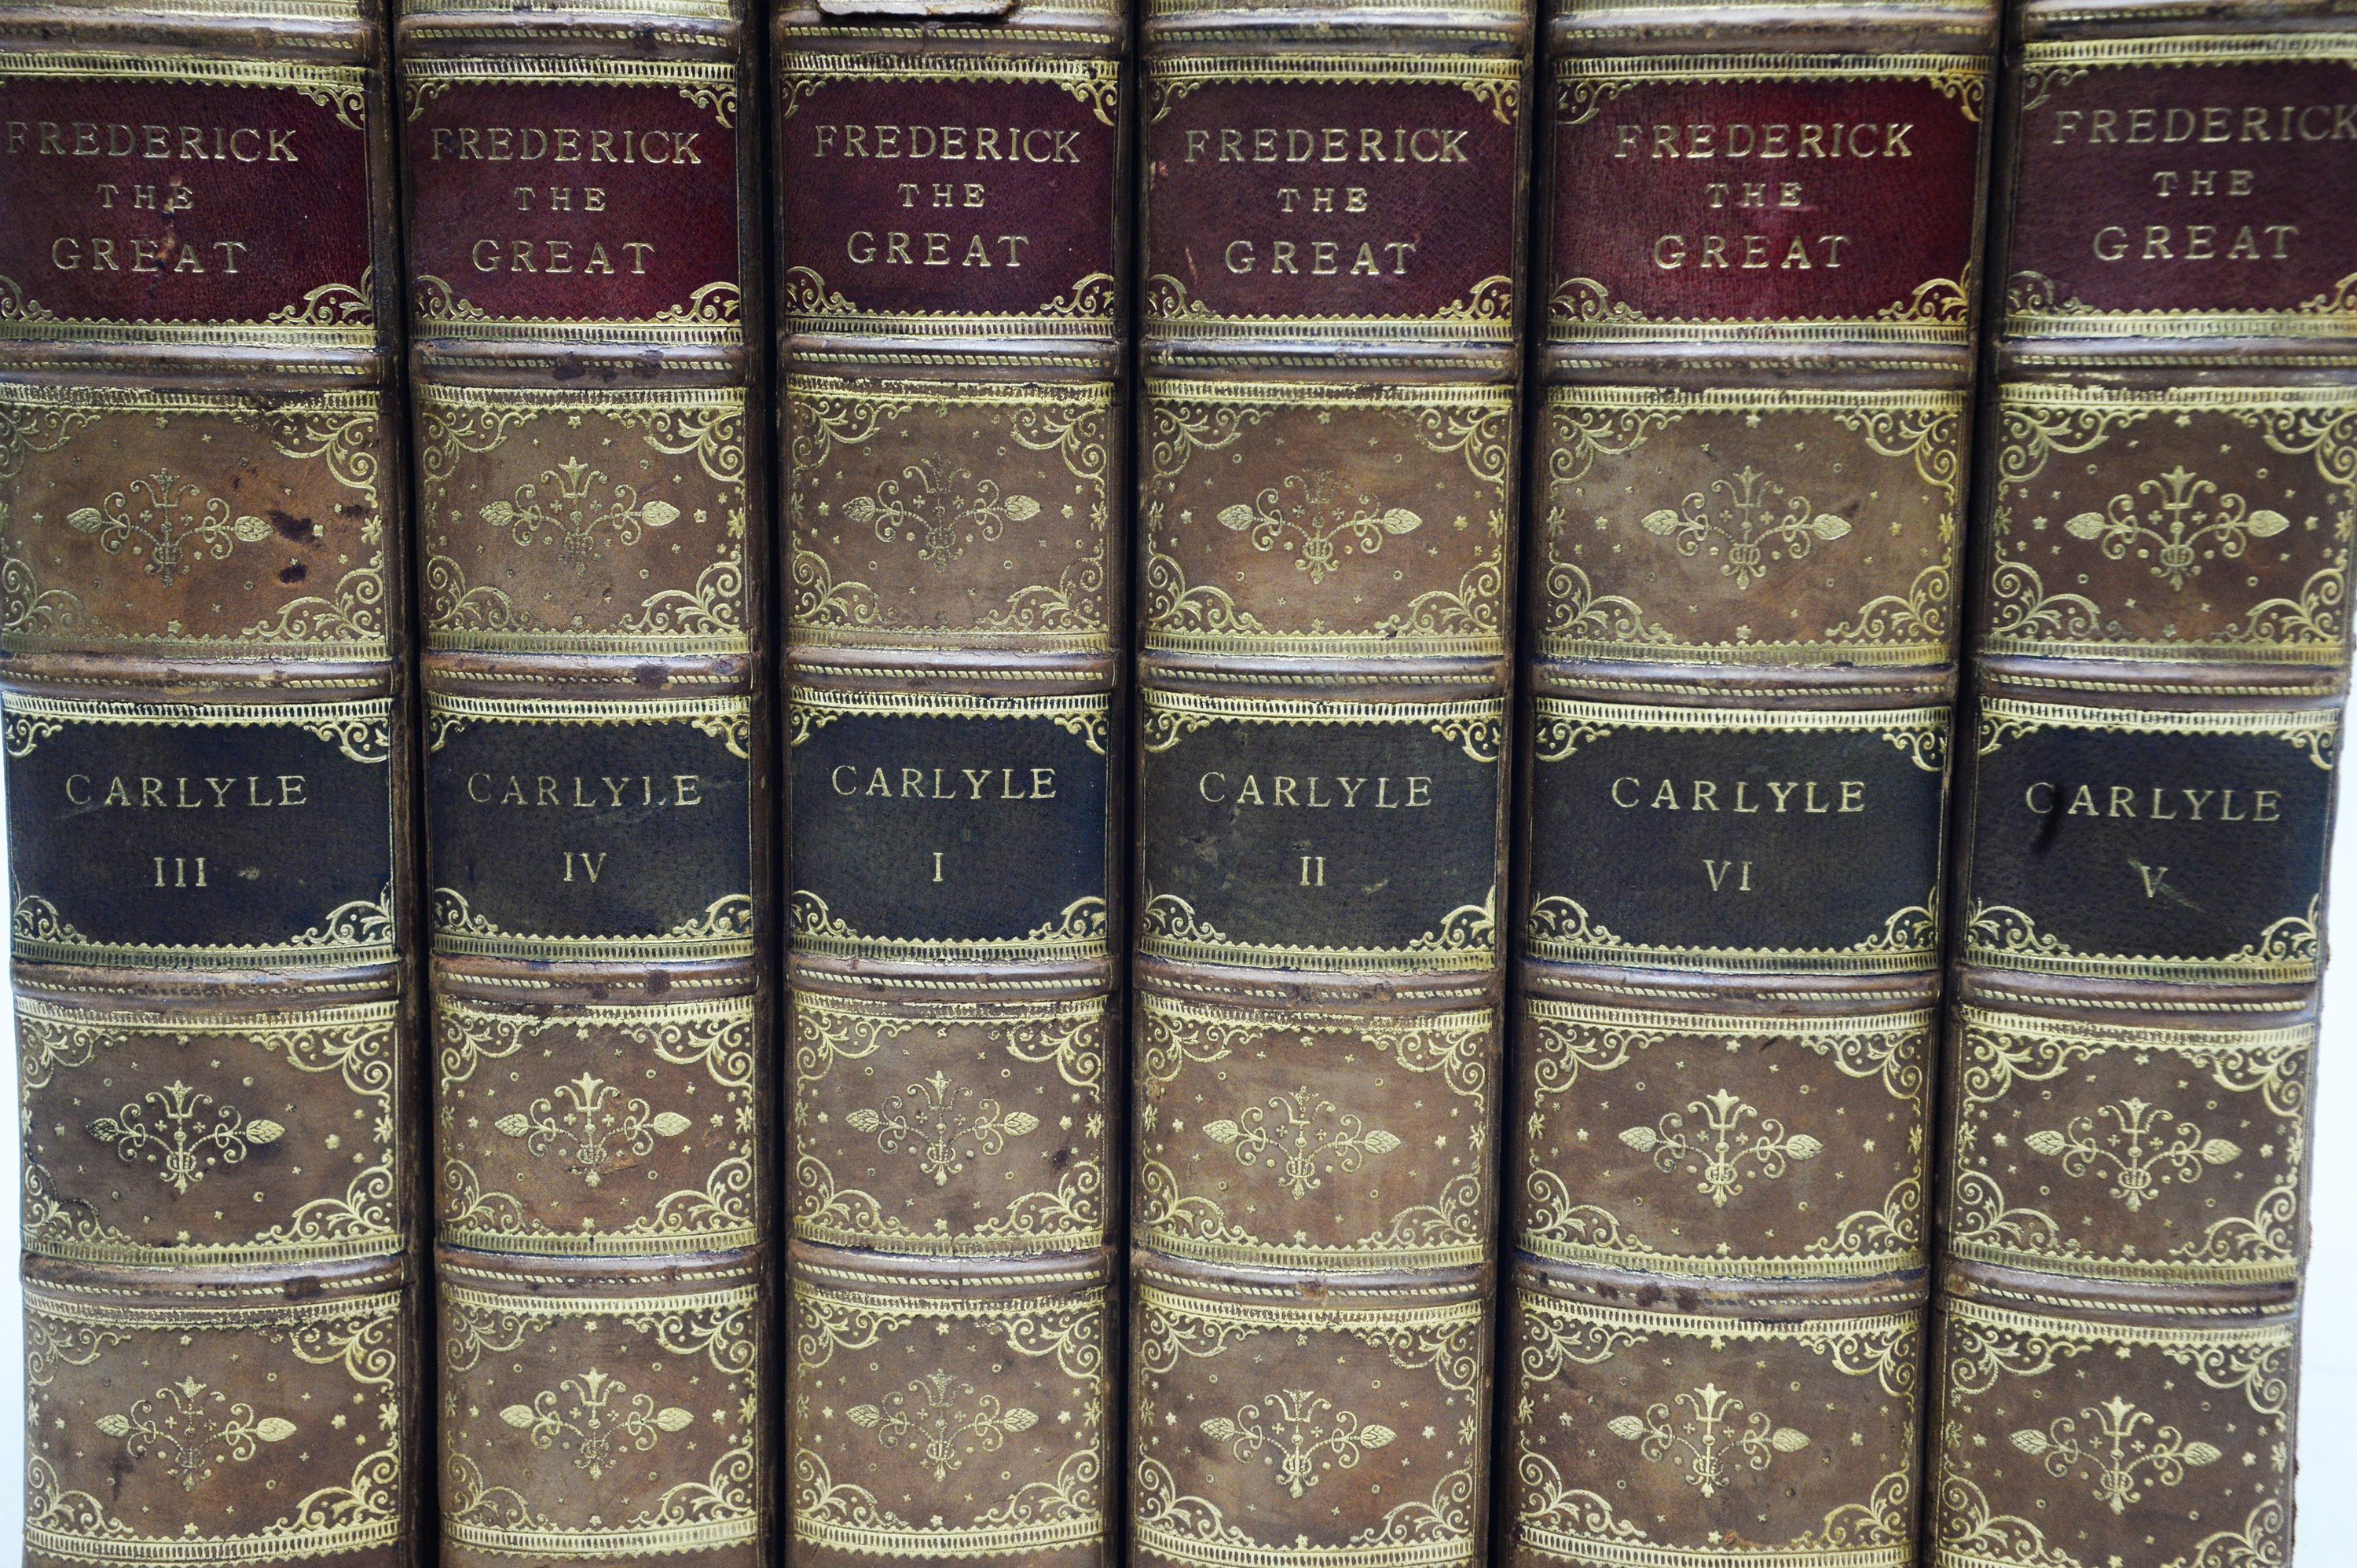 Carlyle (Thomas) History of Frederick The Great of Prussia. - Image 2 of 3